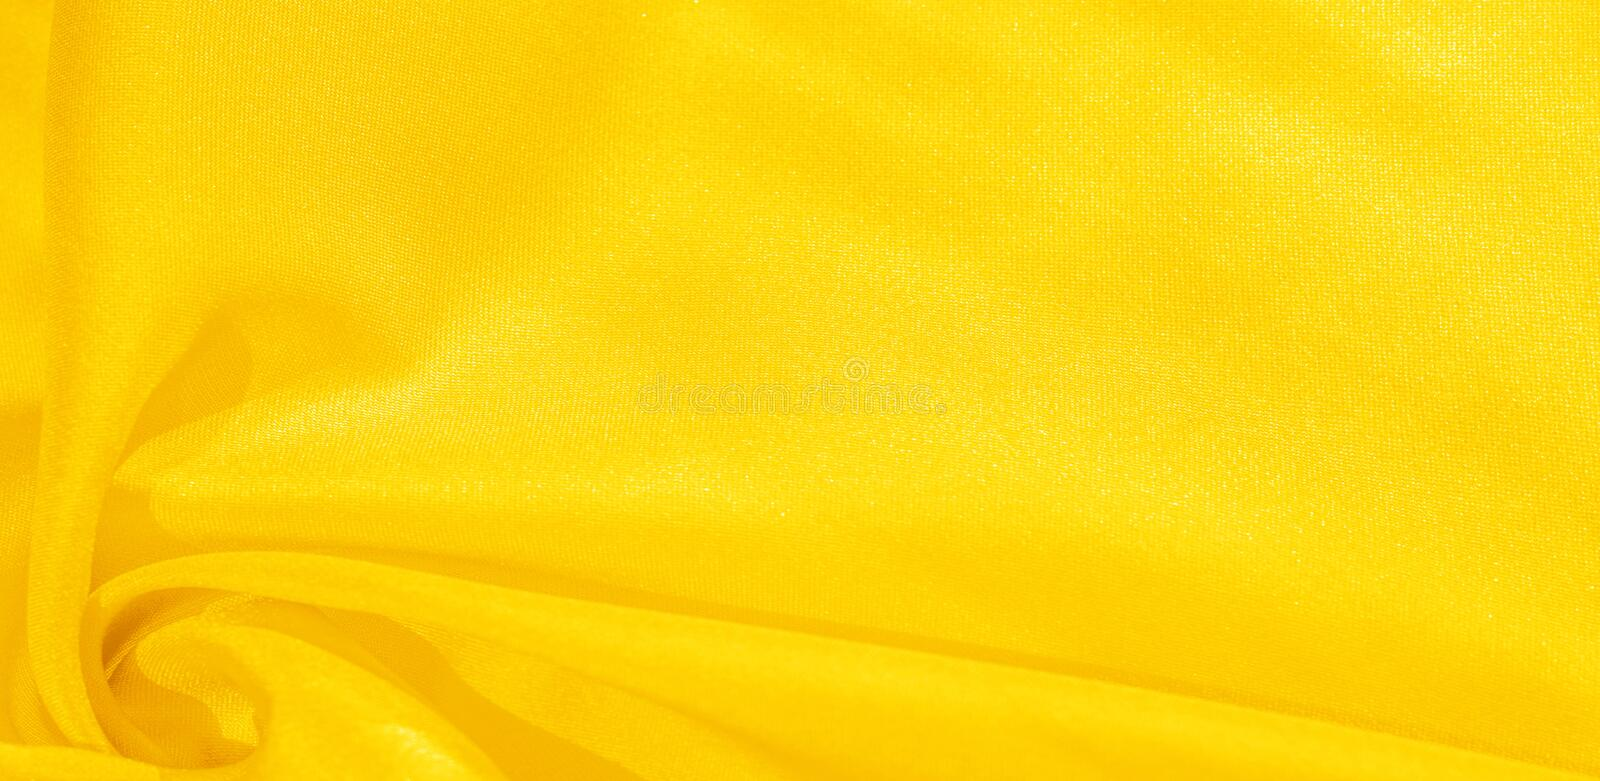 Texture, background, pattern, silk fabric in yellow. This silk is incredibly exquisite. Projects made from this will last a long. Time and will still be in royalty free stock photo